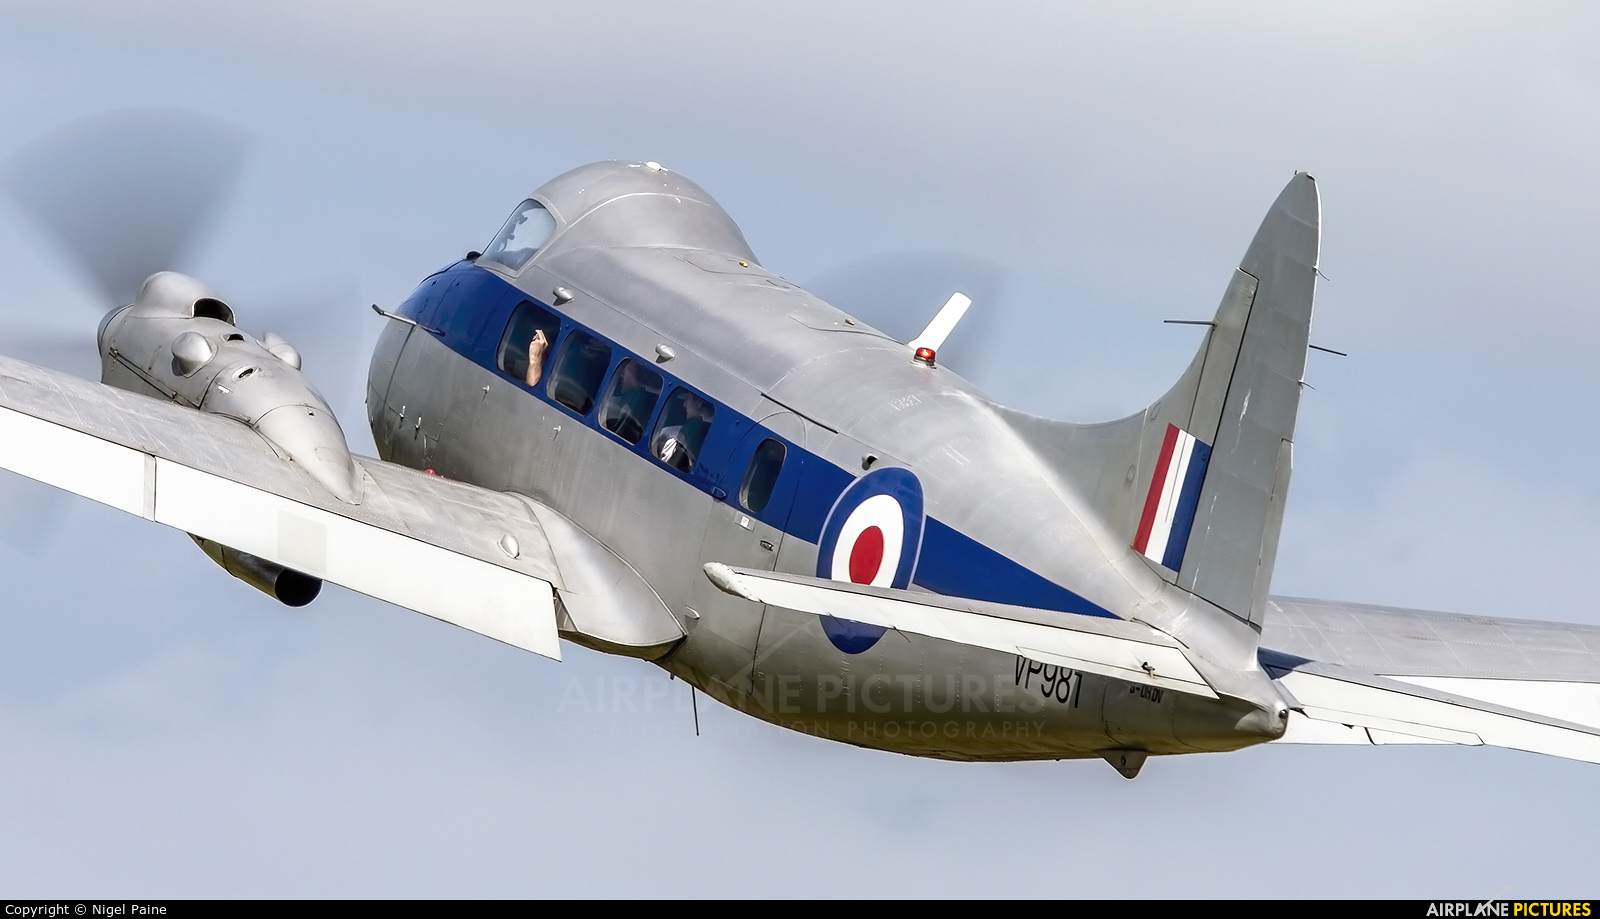 Aero Legends G-DHDV aircraft at Lashenden / Headcorn